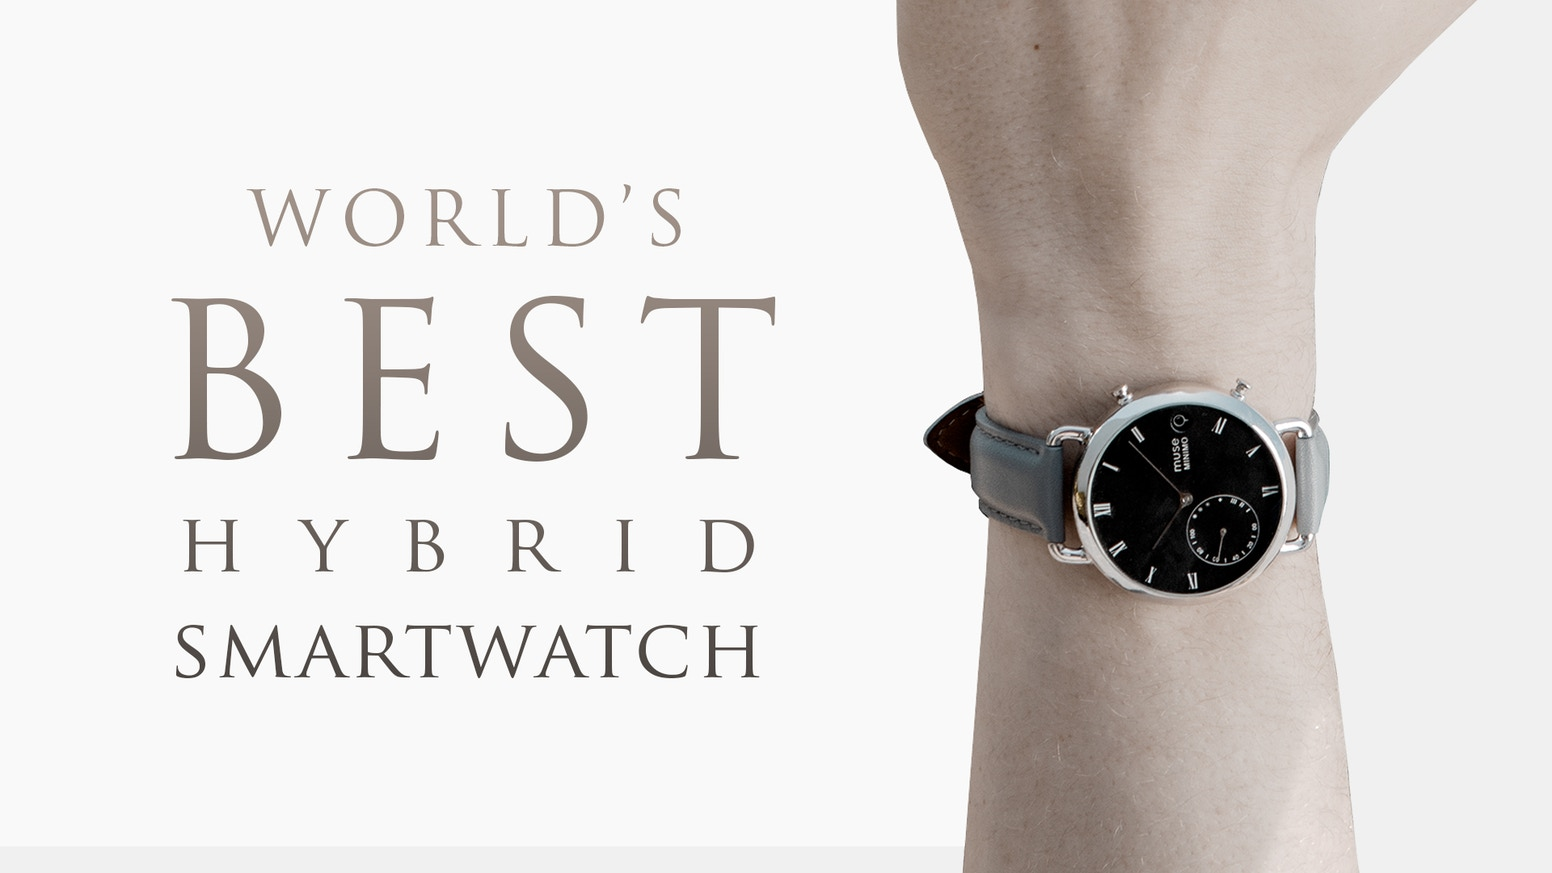 55d4b5f2b1a2 The World s Best Hybrid Smartwatch - Muse Wearables by Muse ...